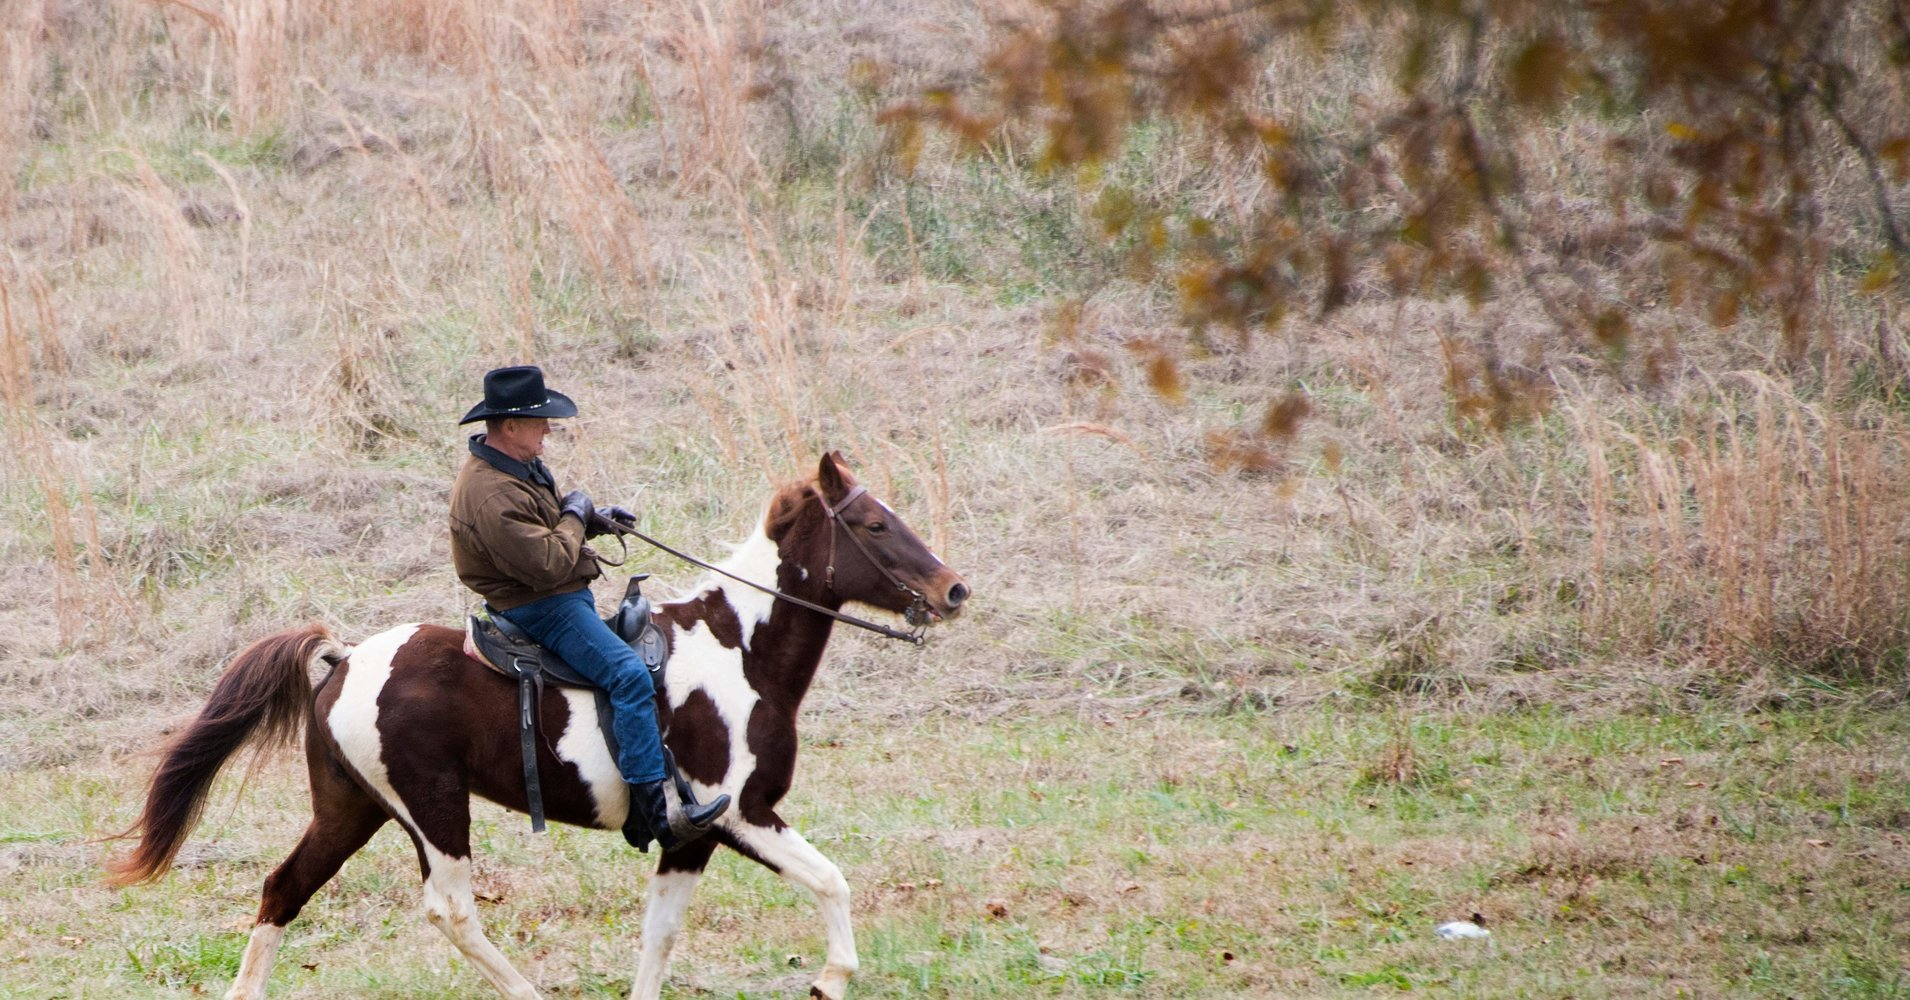 Roy Moore rode in to vote on a horse named 'Sassy' https://t.co/cF5aPjORX4 https://t.co/68EZAaiSa7